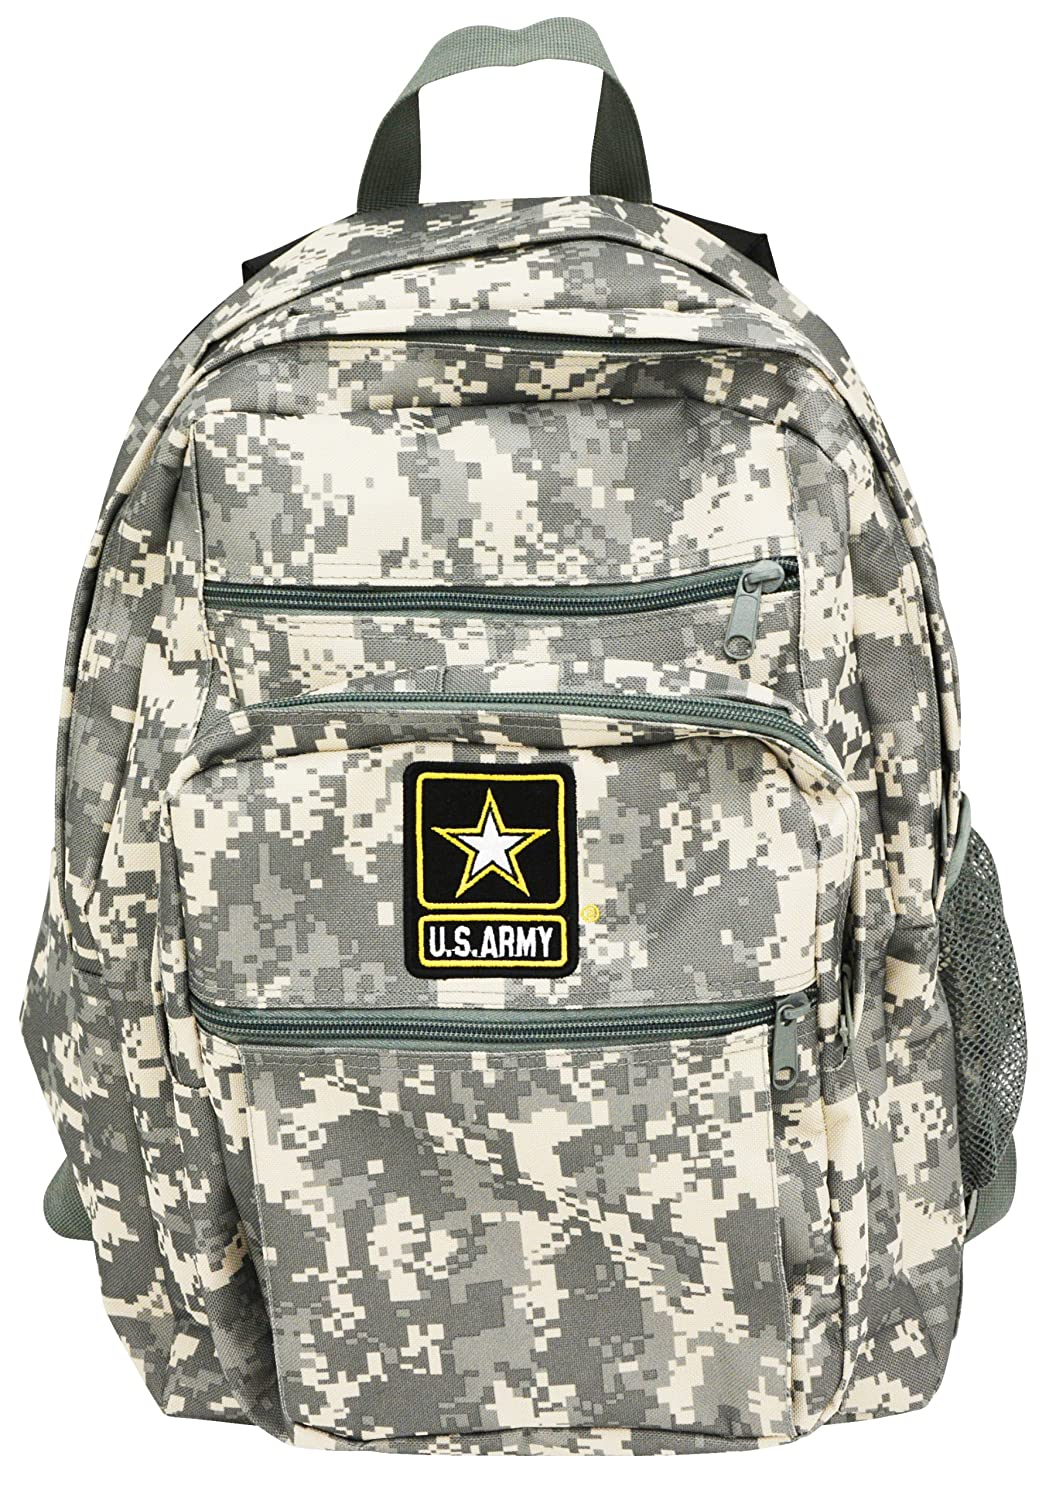 7f53cb77ba Amazon.com | Official US Army Strong Military Backpack Bag Digital  Camouflage Camo Print | Casual Daypacks